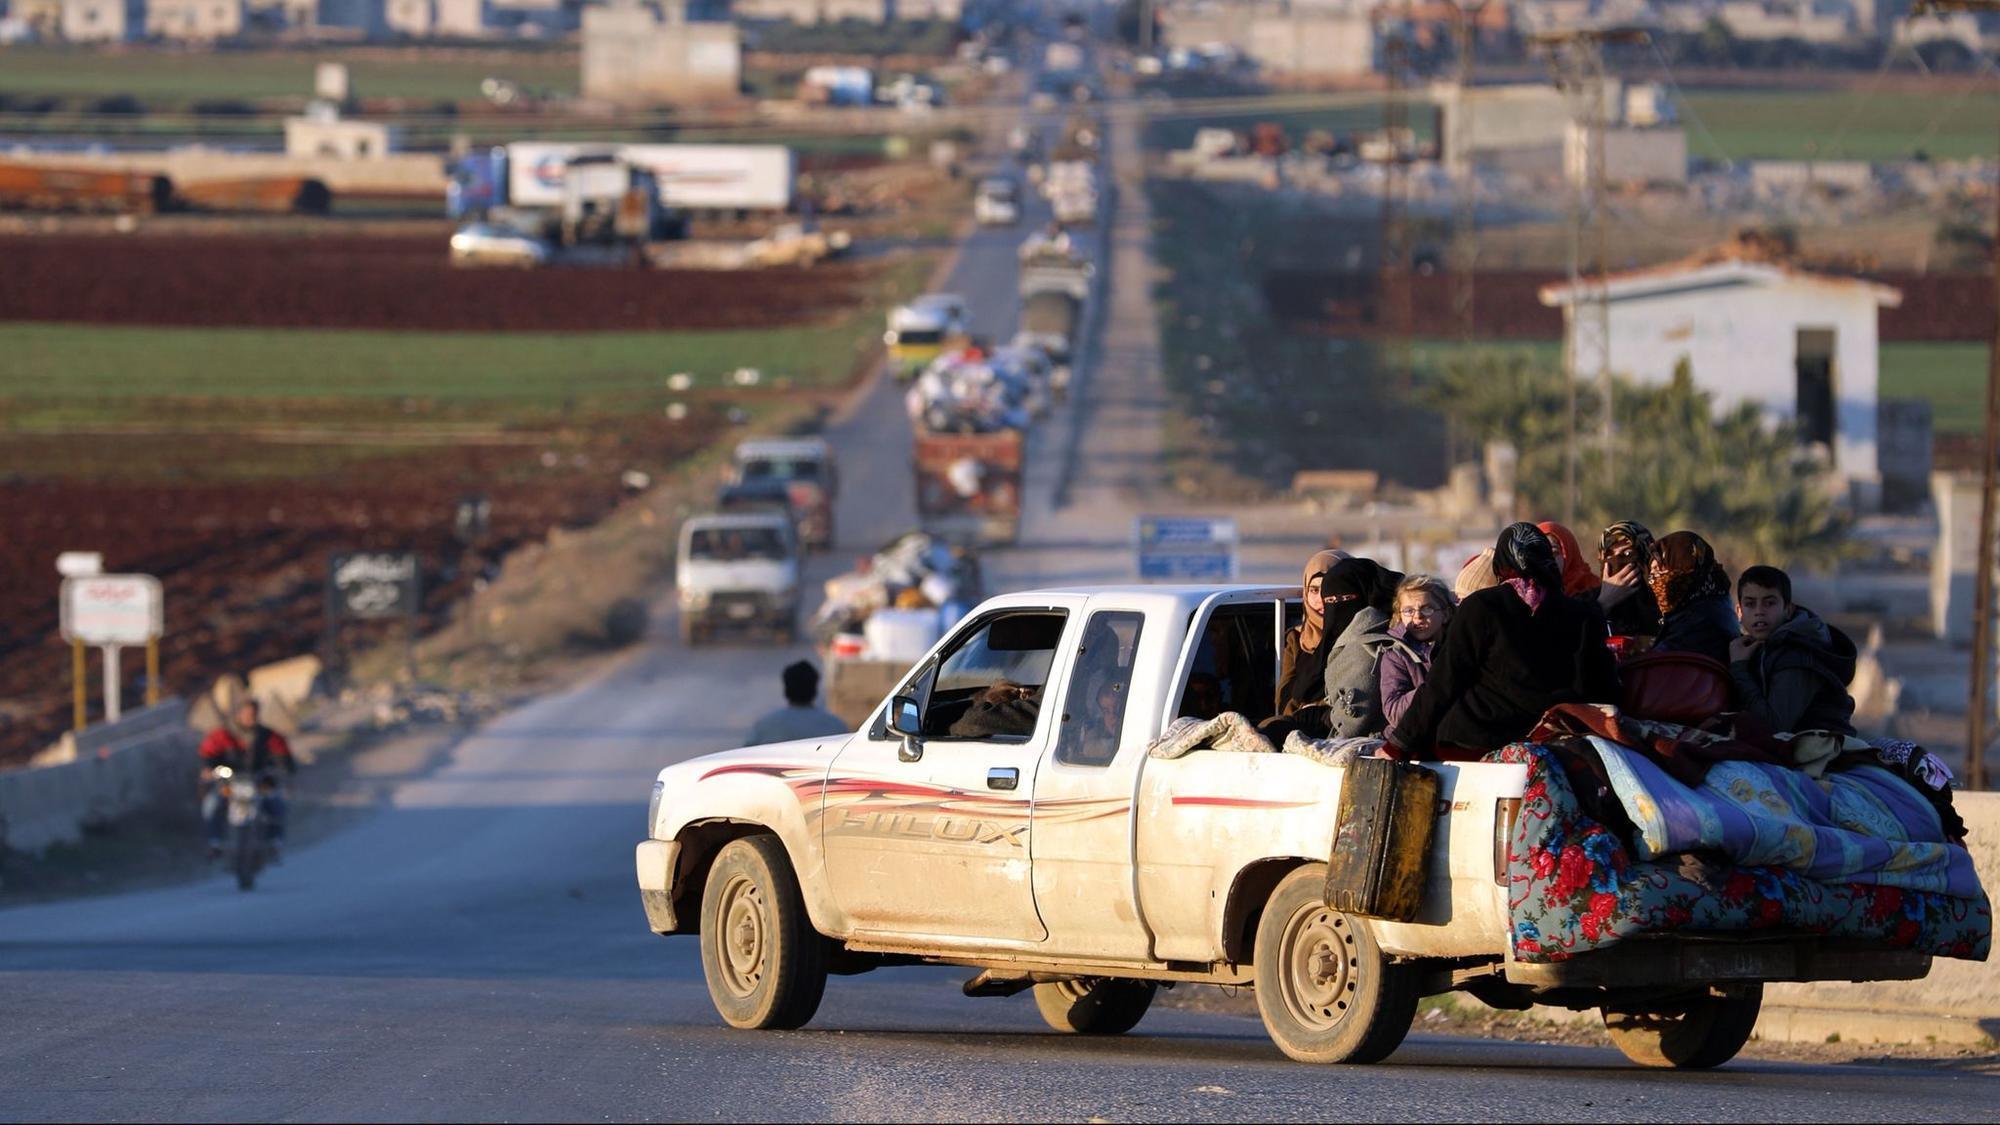 Displaced Syrians flee Idlib, one of the last rebel enclaves in the country, (Omar Haj Kadour / AFP / Getty Images)